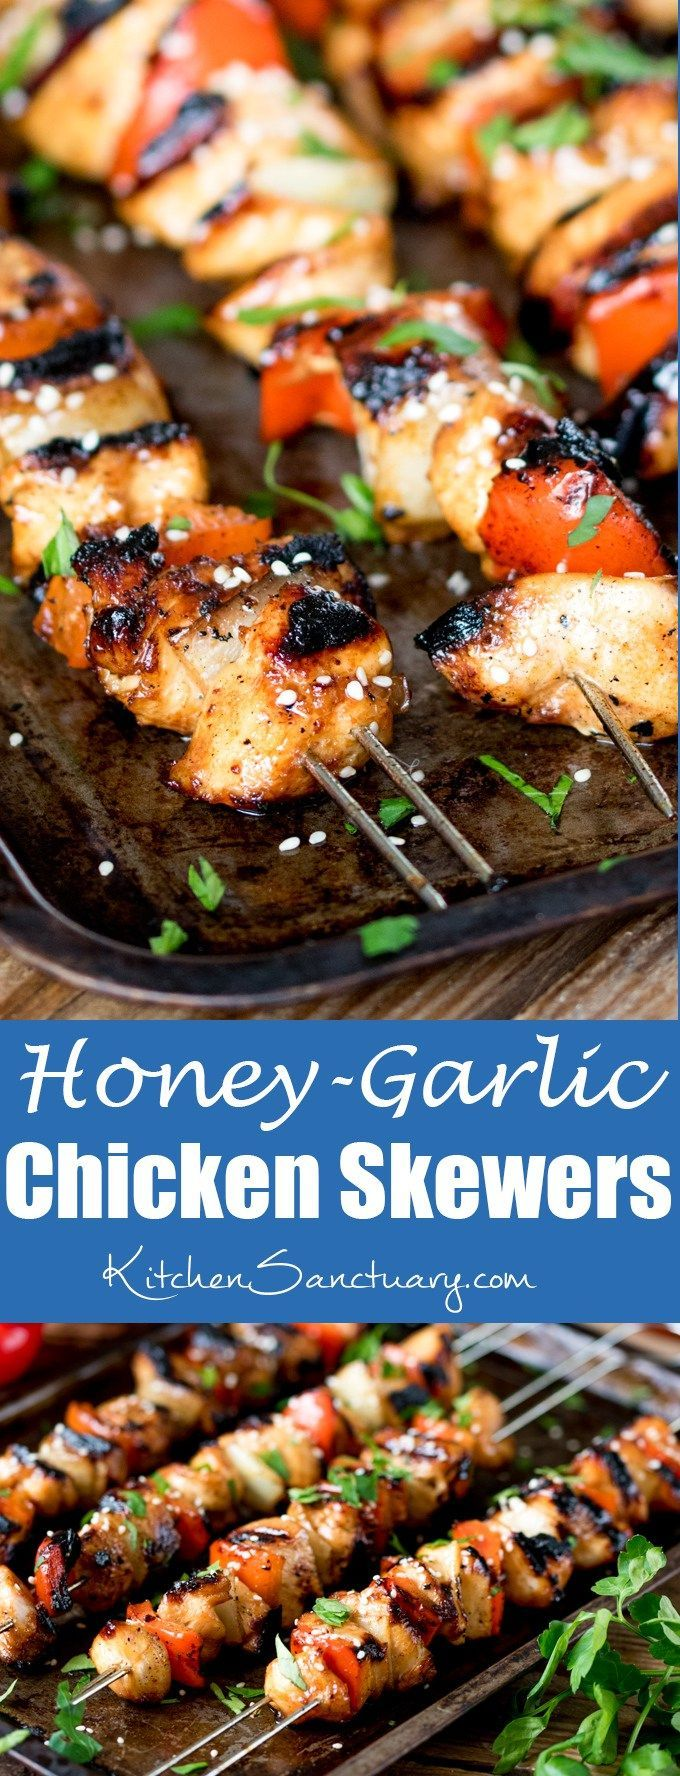 How long do i grill chicken skewers - Honey Garlic Chicken Skewers